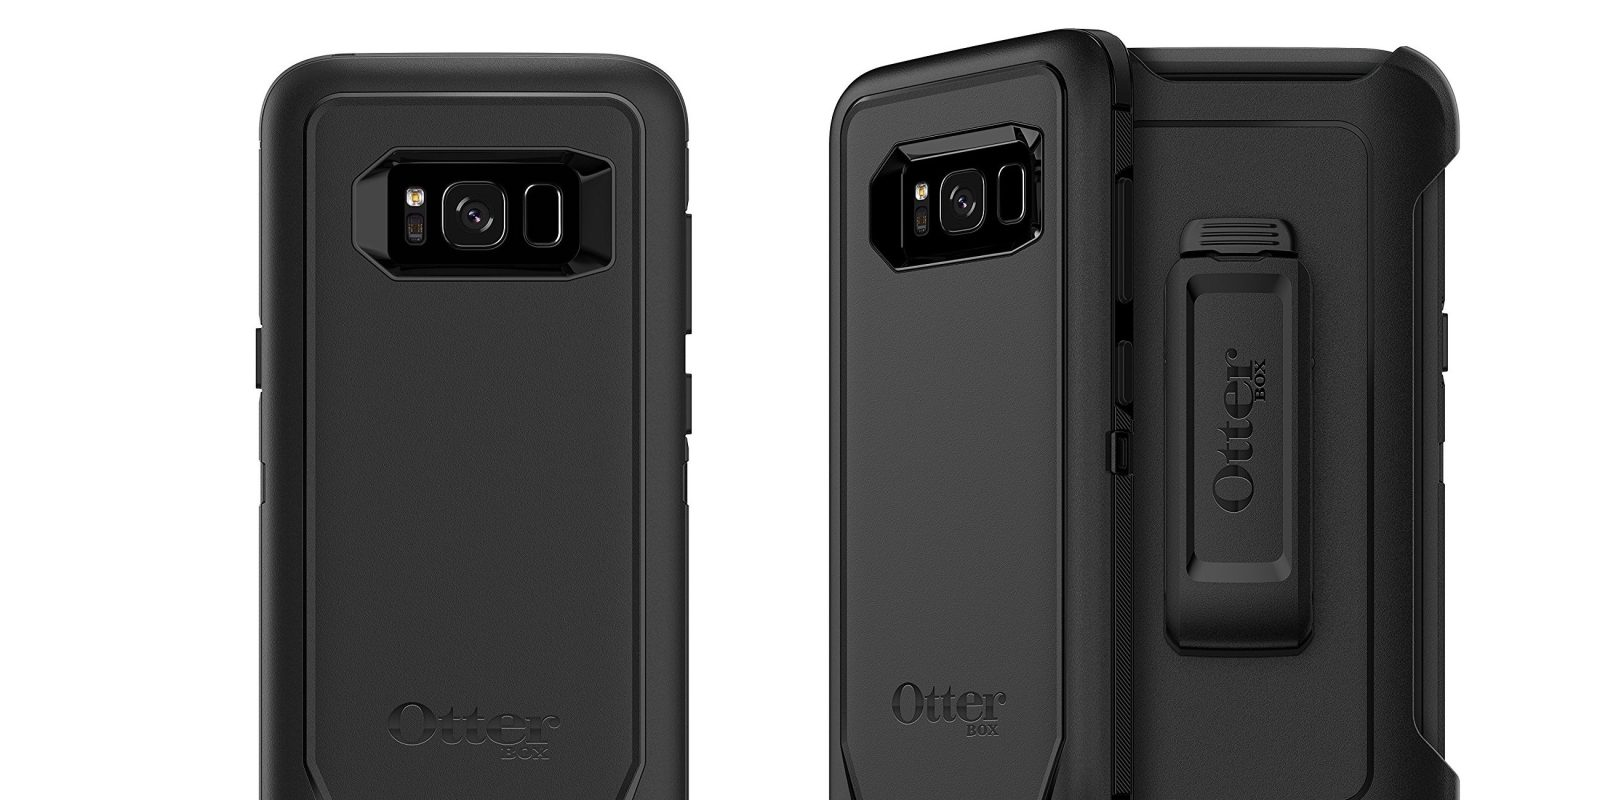 low priced 6c346 2a6db OtterBox Defender Series Case for Samsung Galaxy S8 hits Amazon low ...